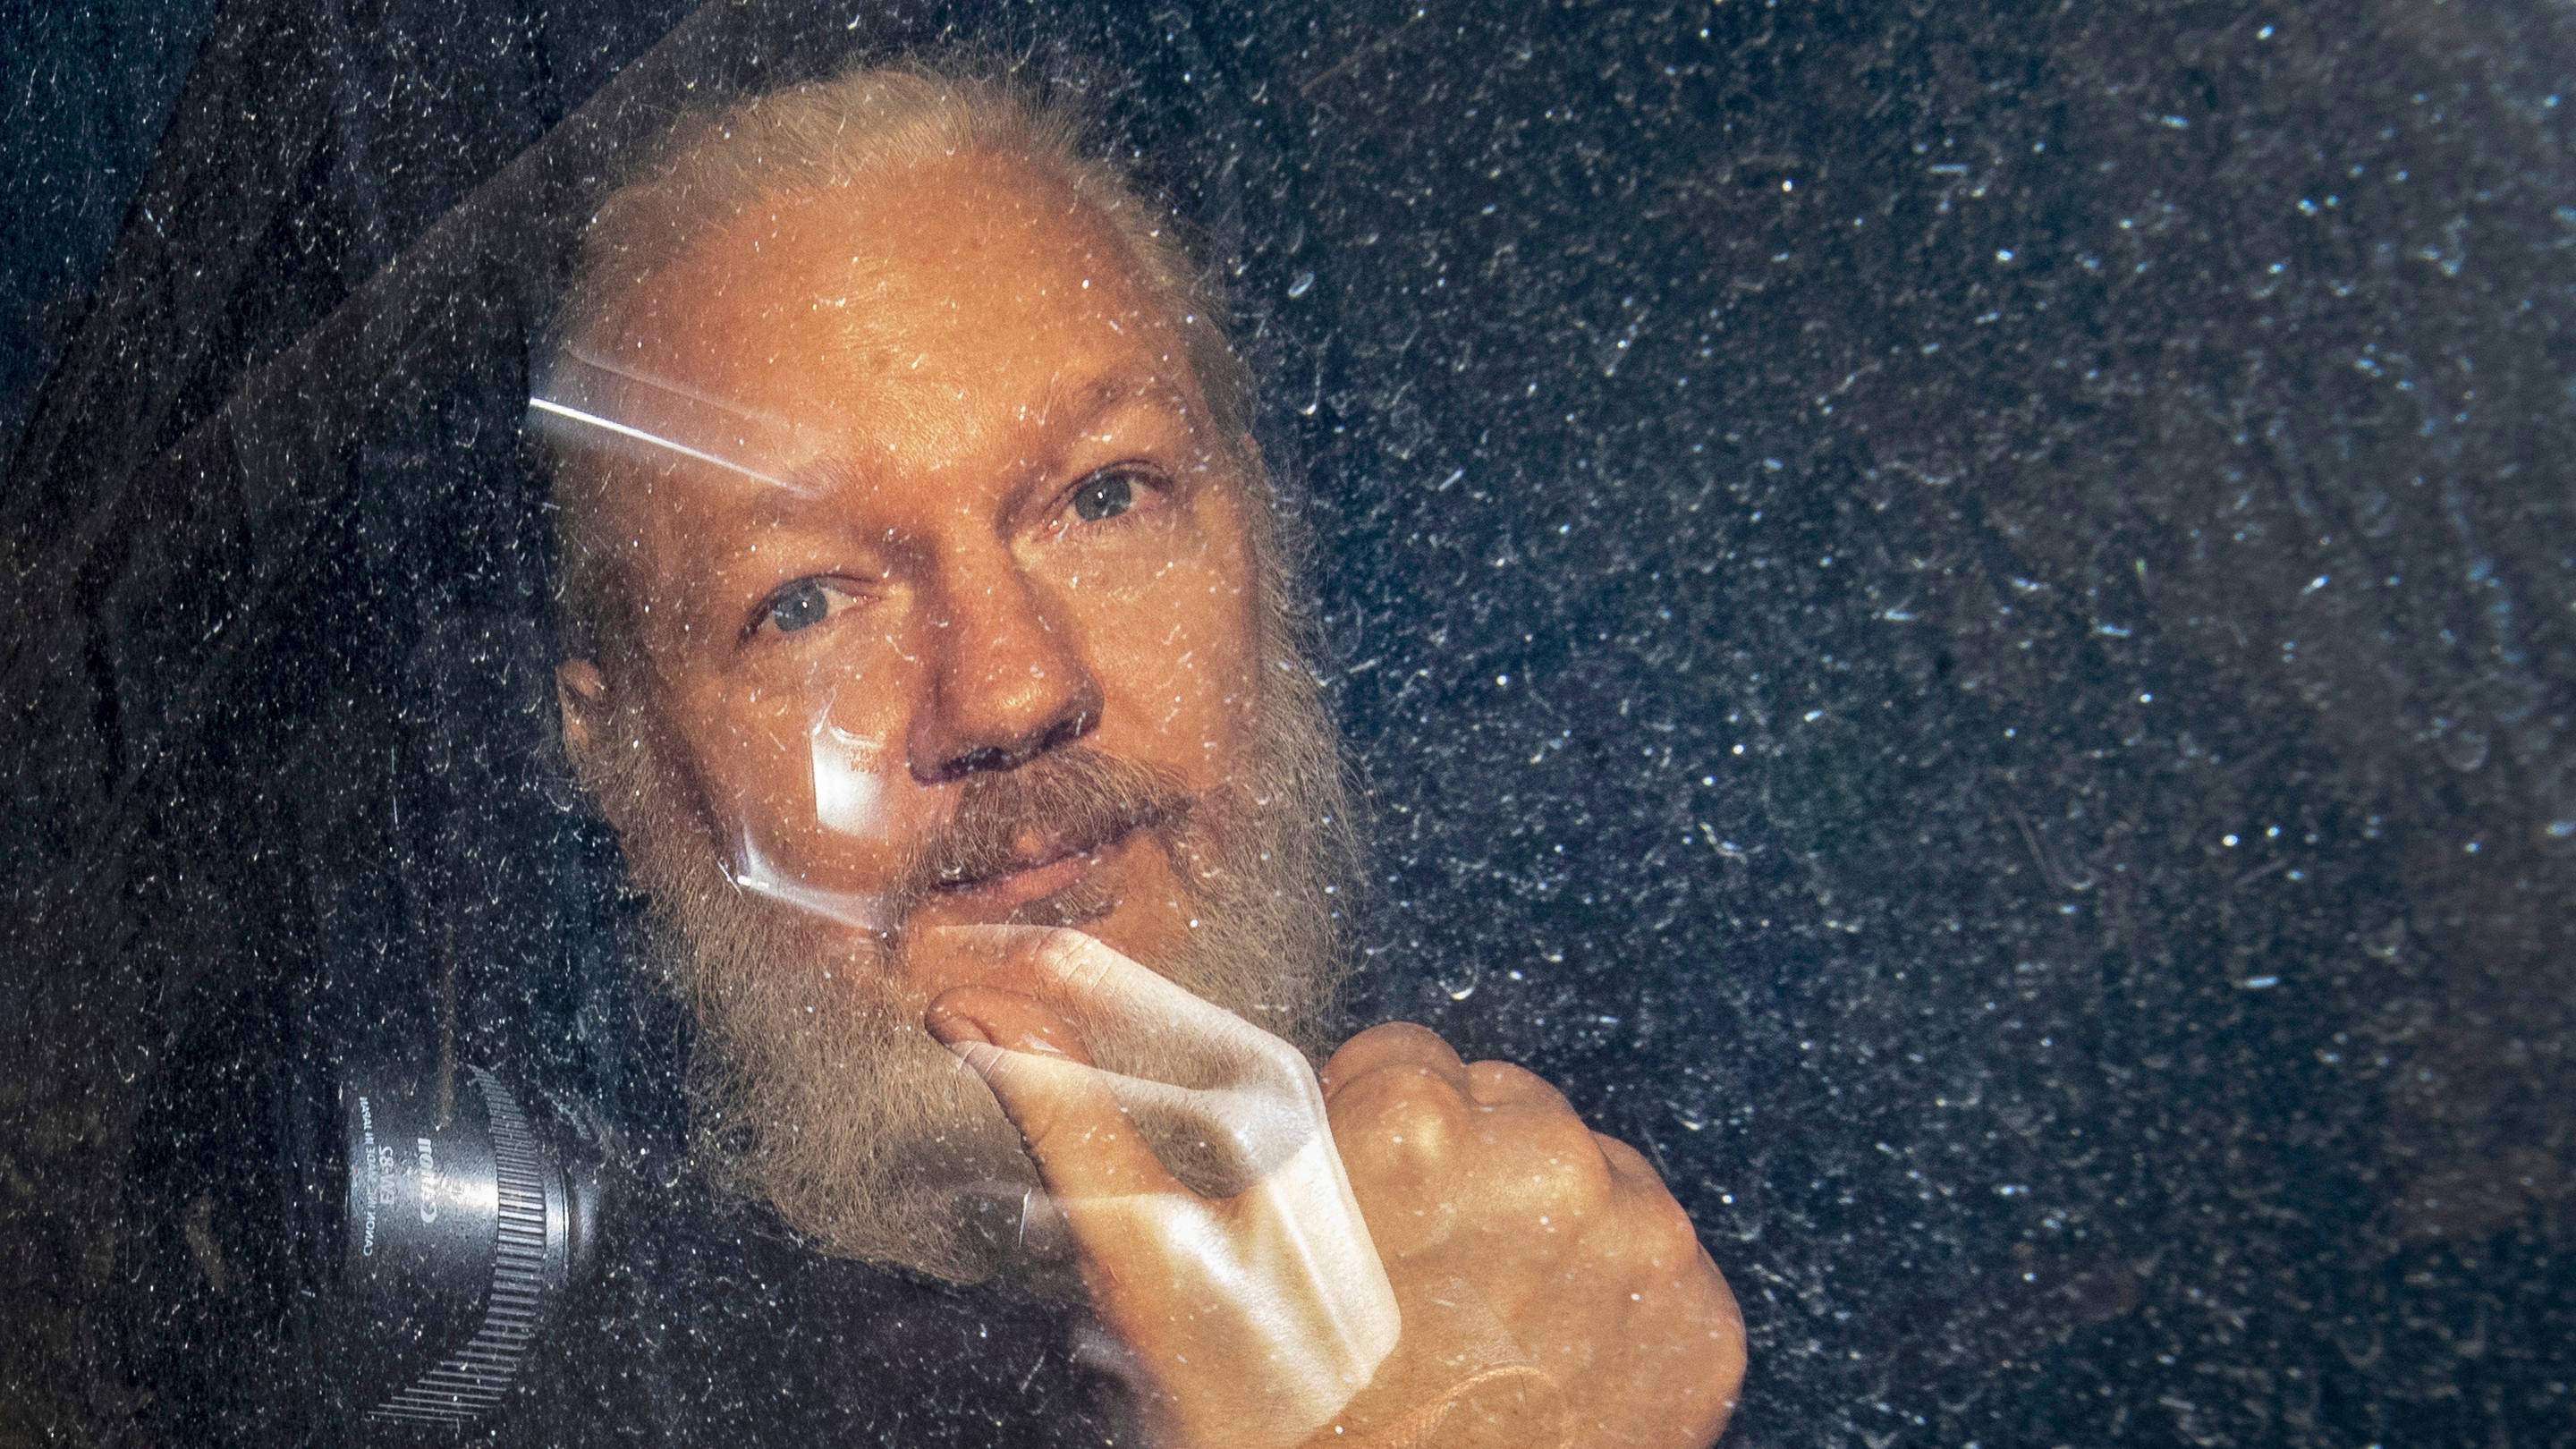 Sweden drop Julian Assange rape investigation